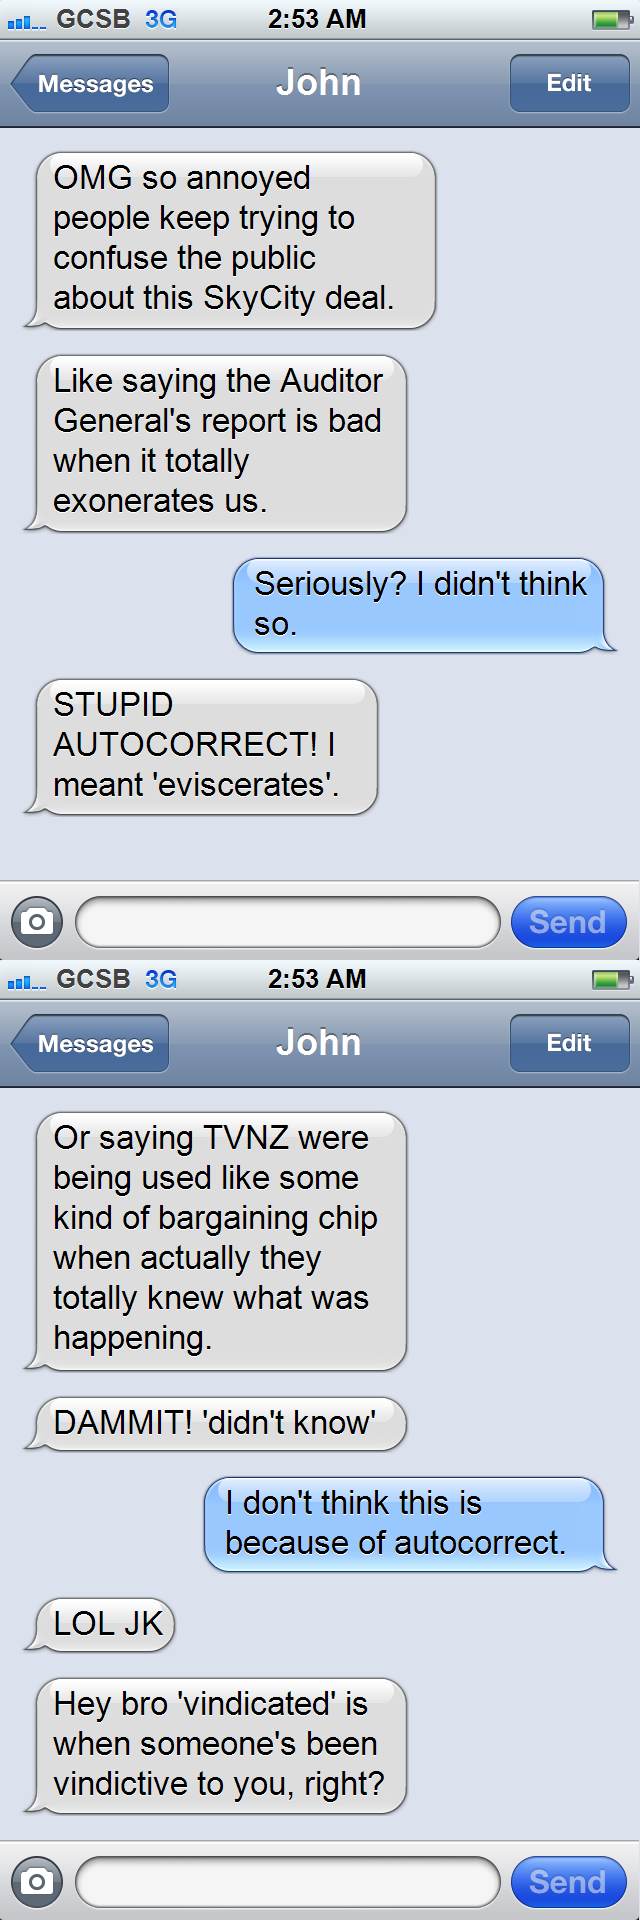 John Key iPhone texts: autocorrect, skycity, tvnz